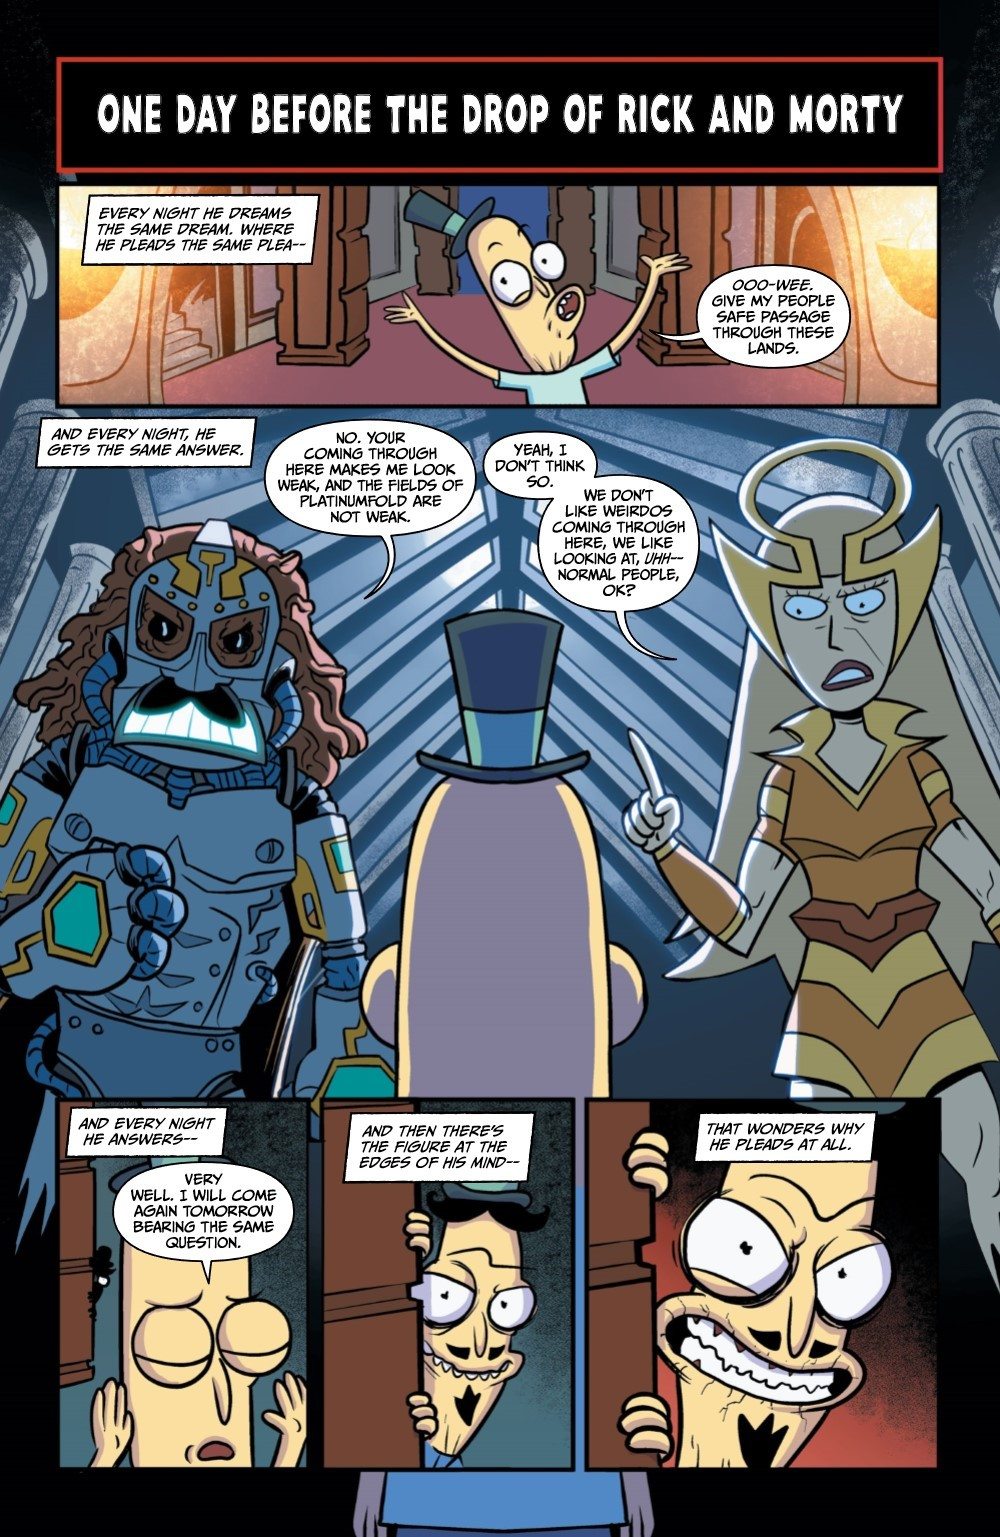 RM-RNH-2-REFERENCE-06 ComicList Previews: RICK AND MORTY RICK'S NEW HAT #2